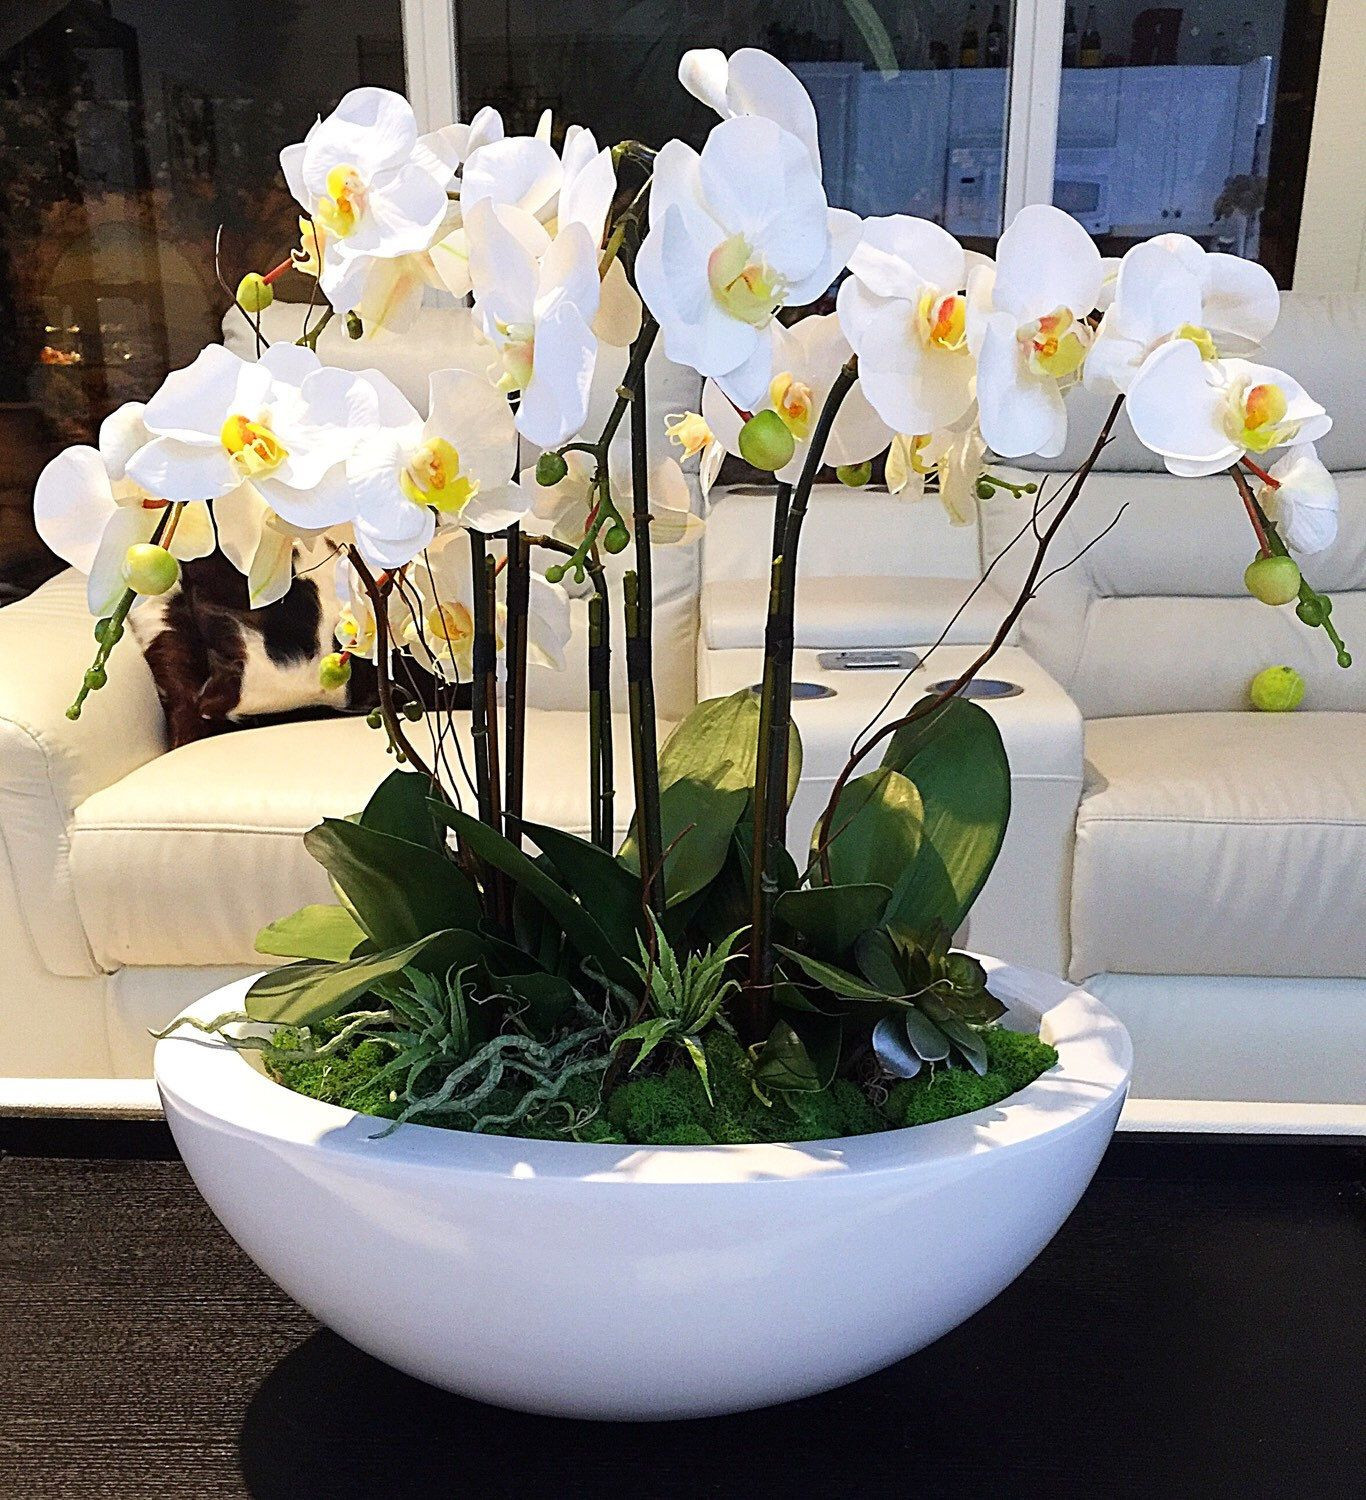 extra large oriental vases of custom order for jeremy large white orchid arrangement realistic inside top 25 orchid arrangements ideas to enhanced your home beauty